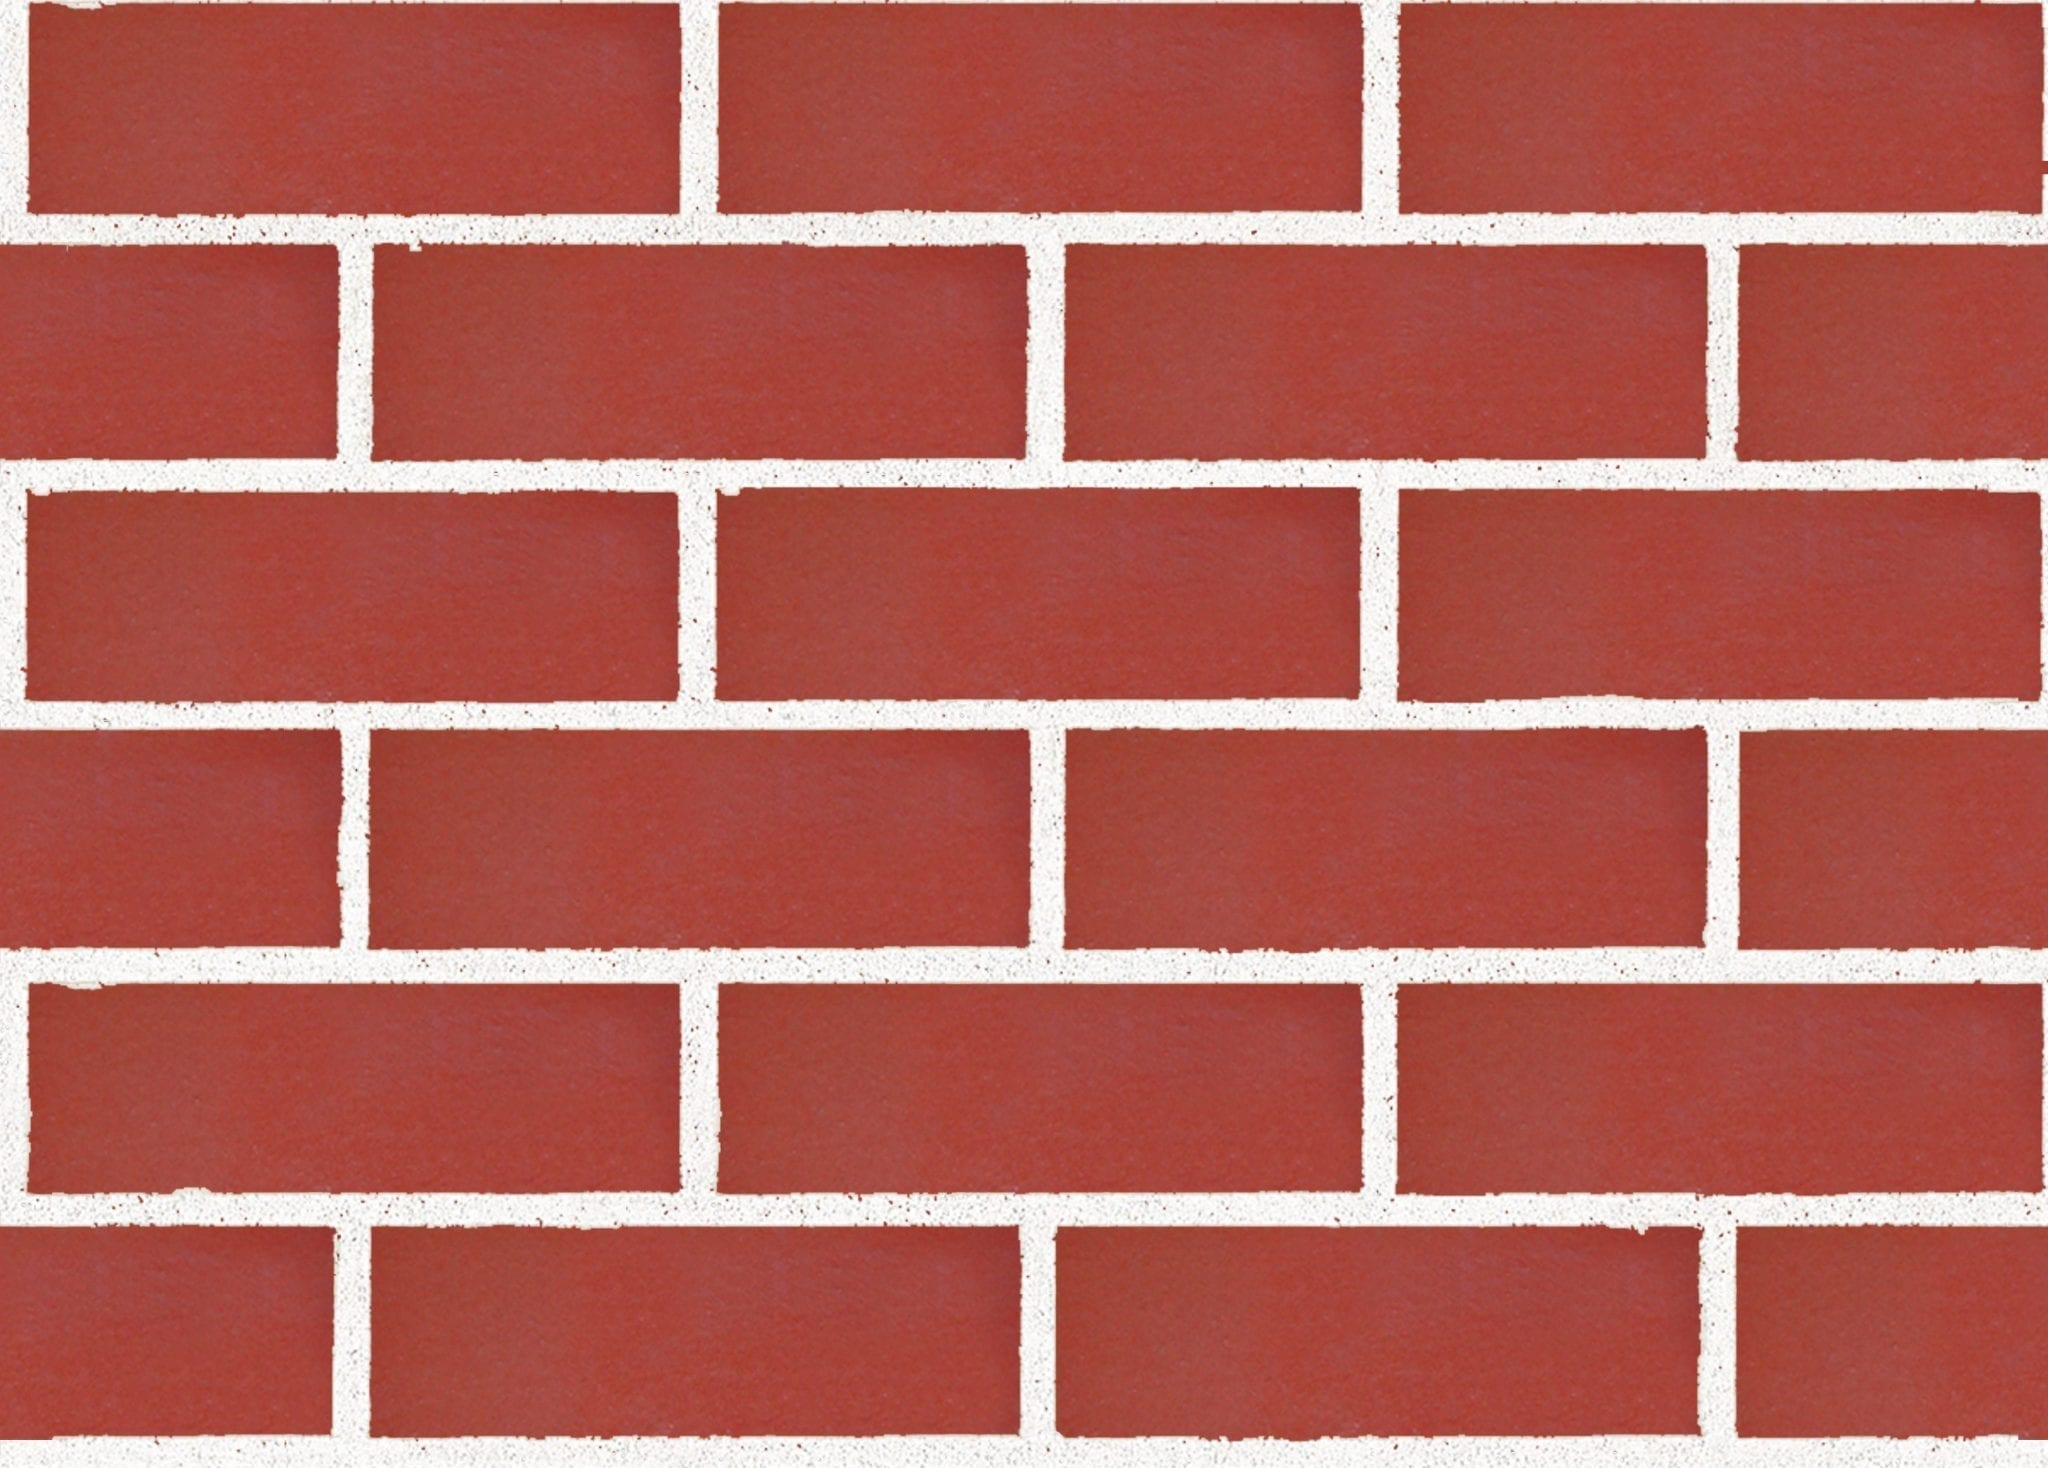 BurlesqueLusciousRed230x76-110-240 - NSW Bricks